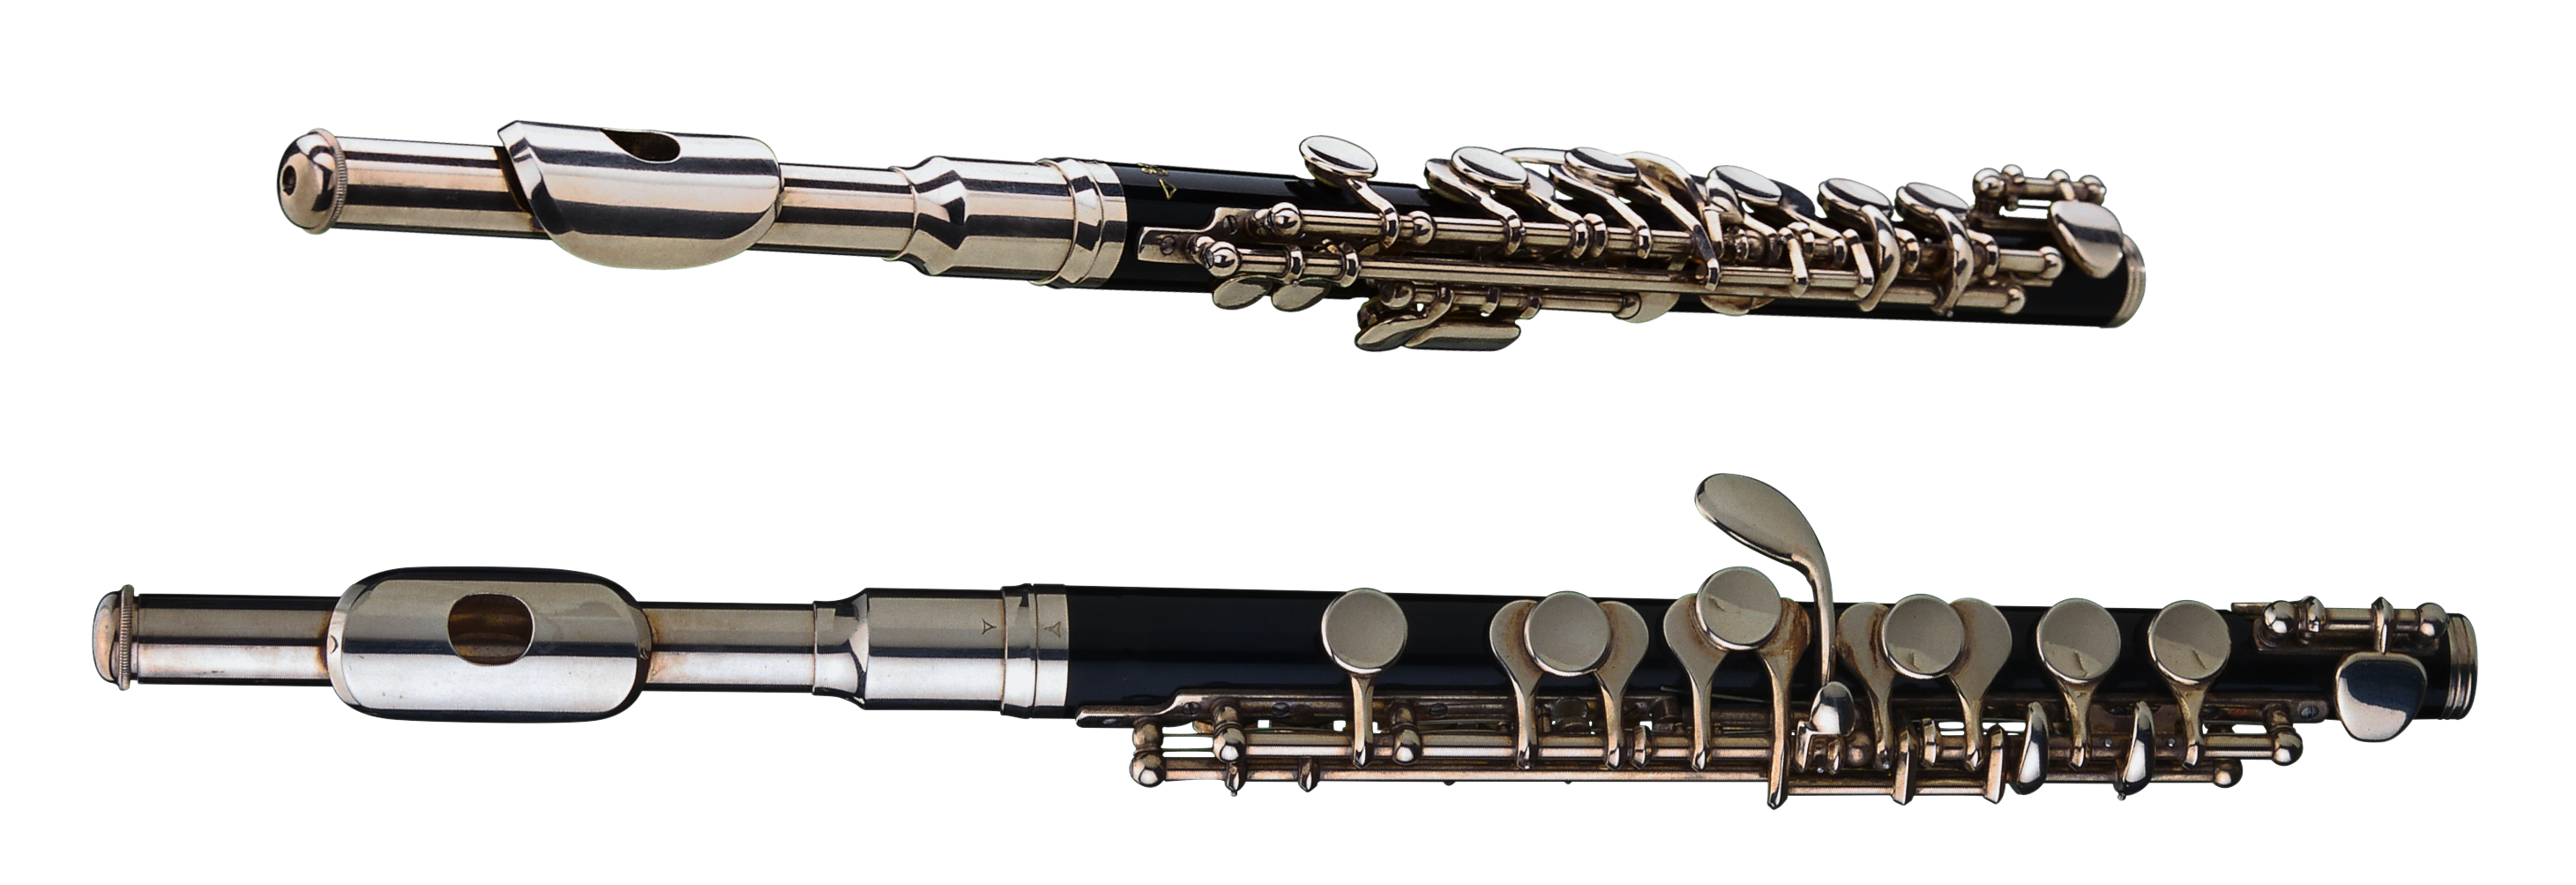 Flutes clipart clarinet player. Flute png images free